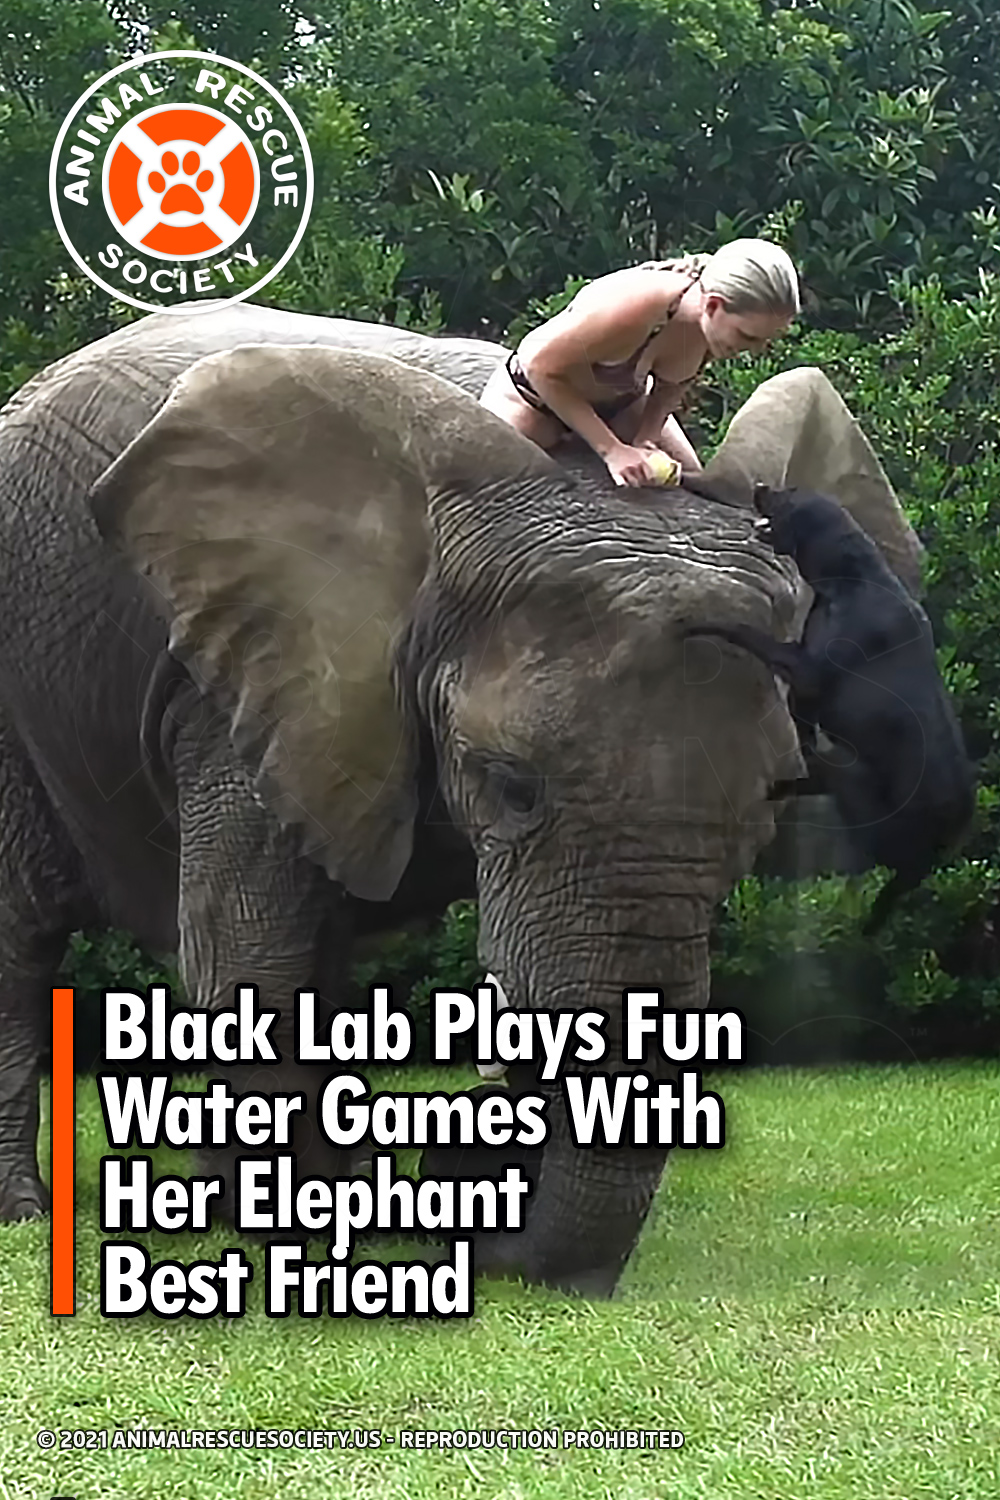 Black Lab Plays Fun Water Games With Her Elephant Best Friend